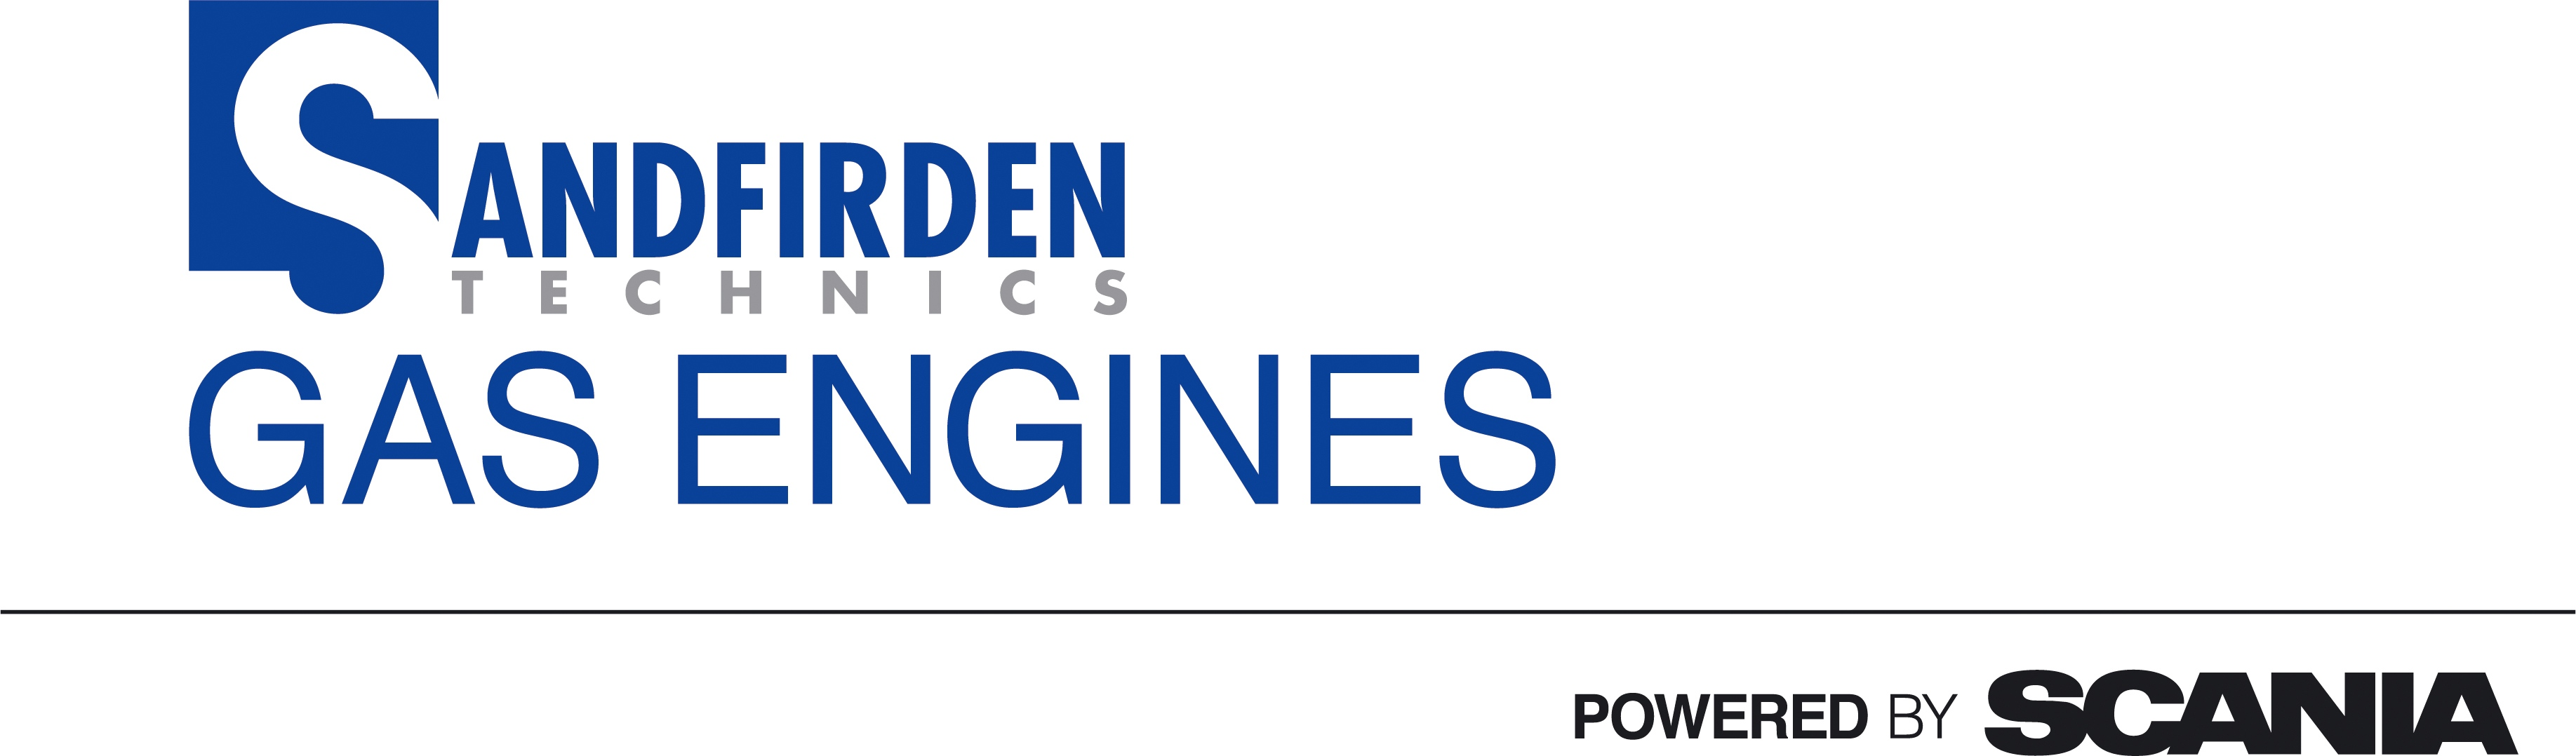 Sandfirden Technics gas engines powered by Scania